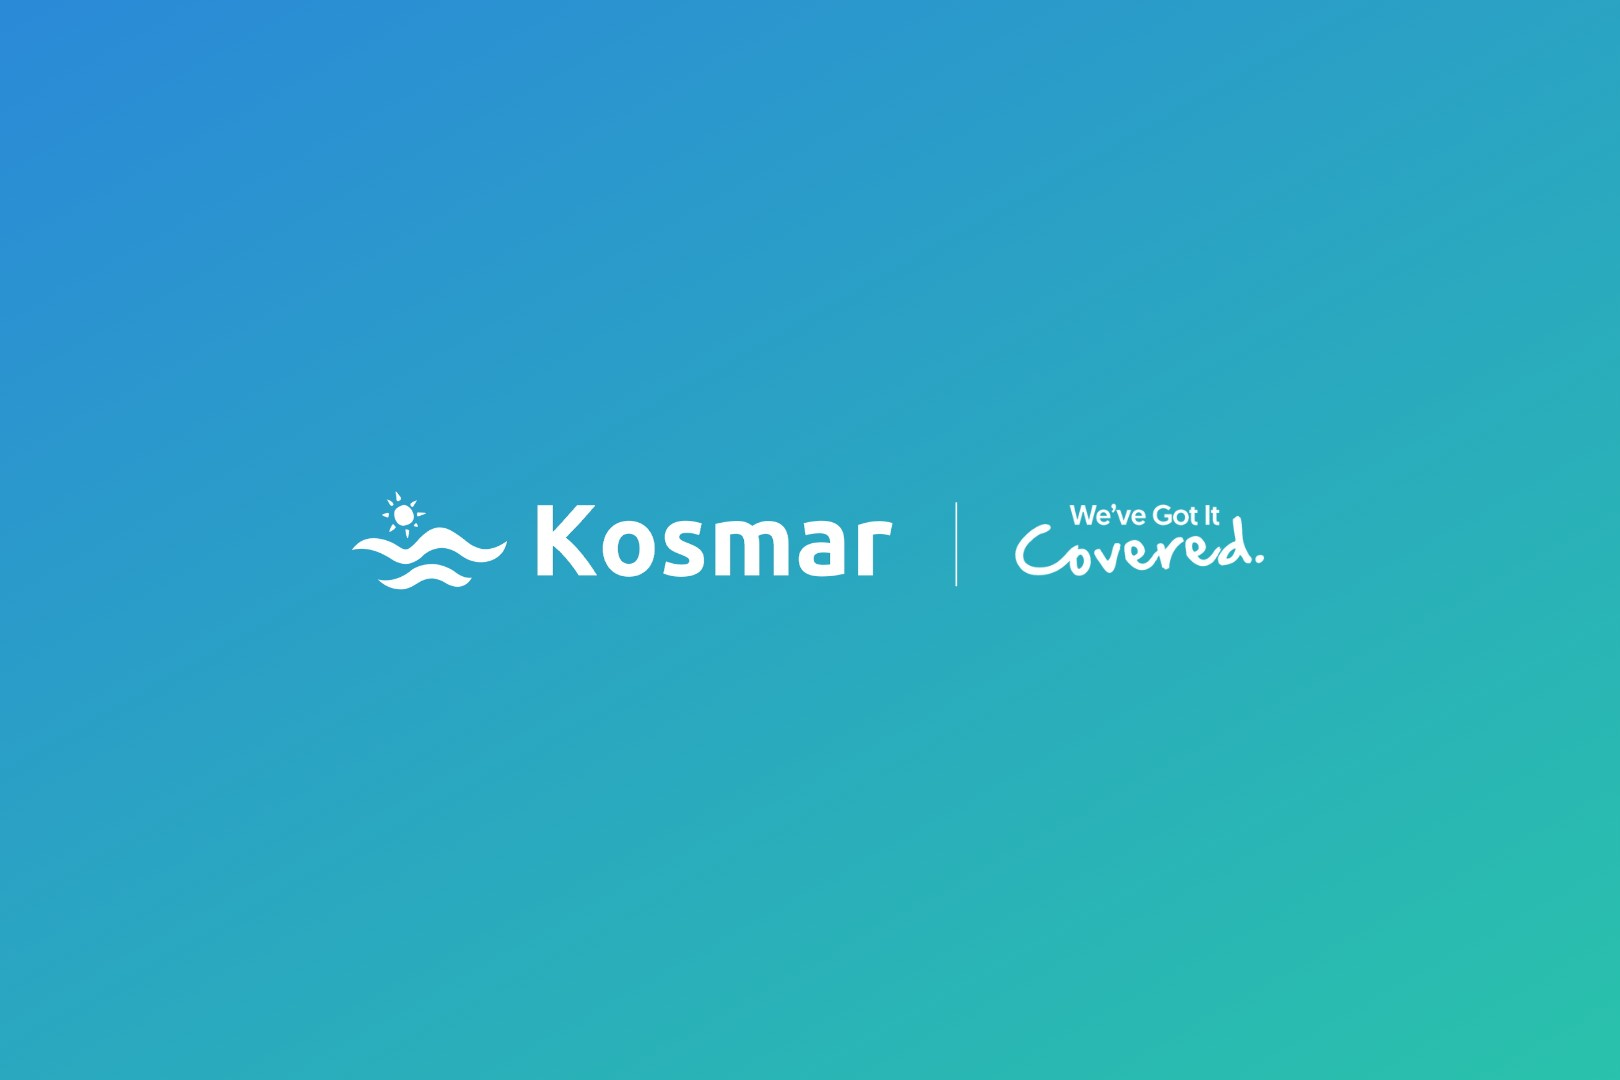 Kosmar to rebrand and expand long-haul offering